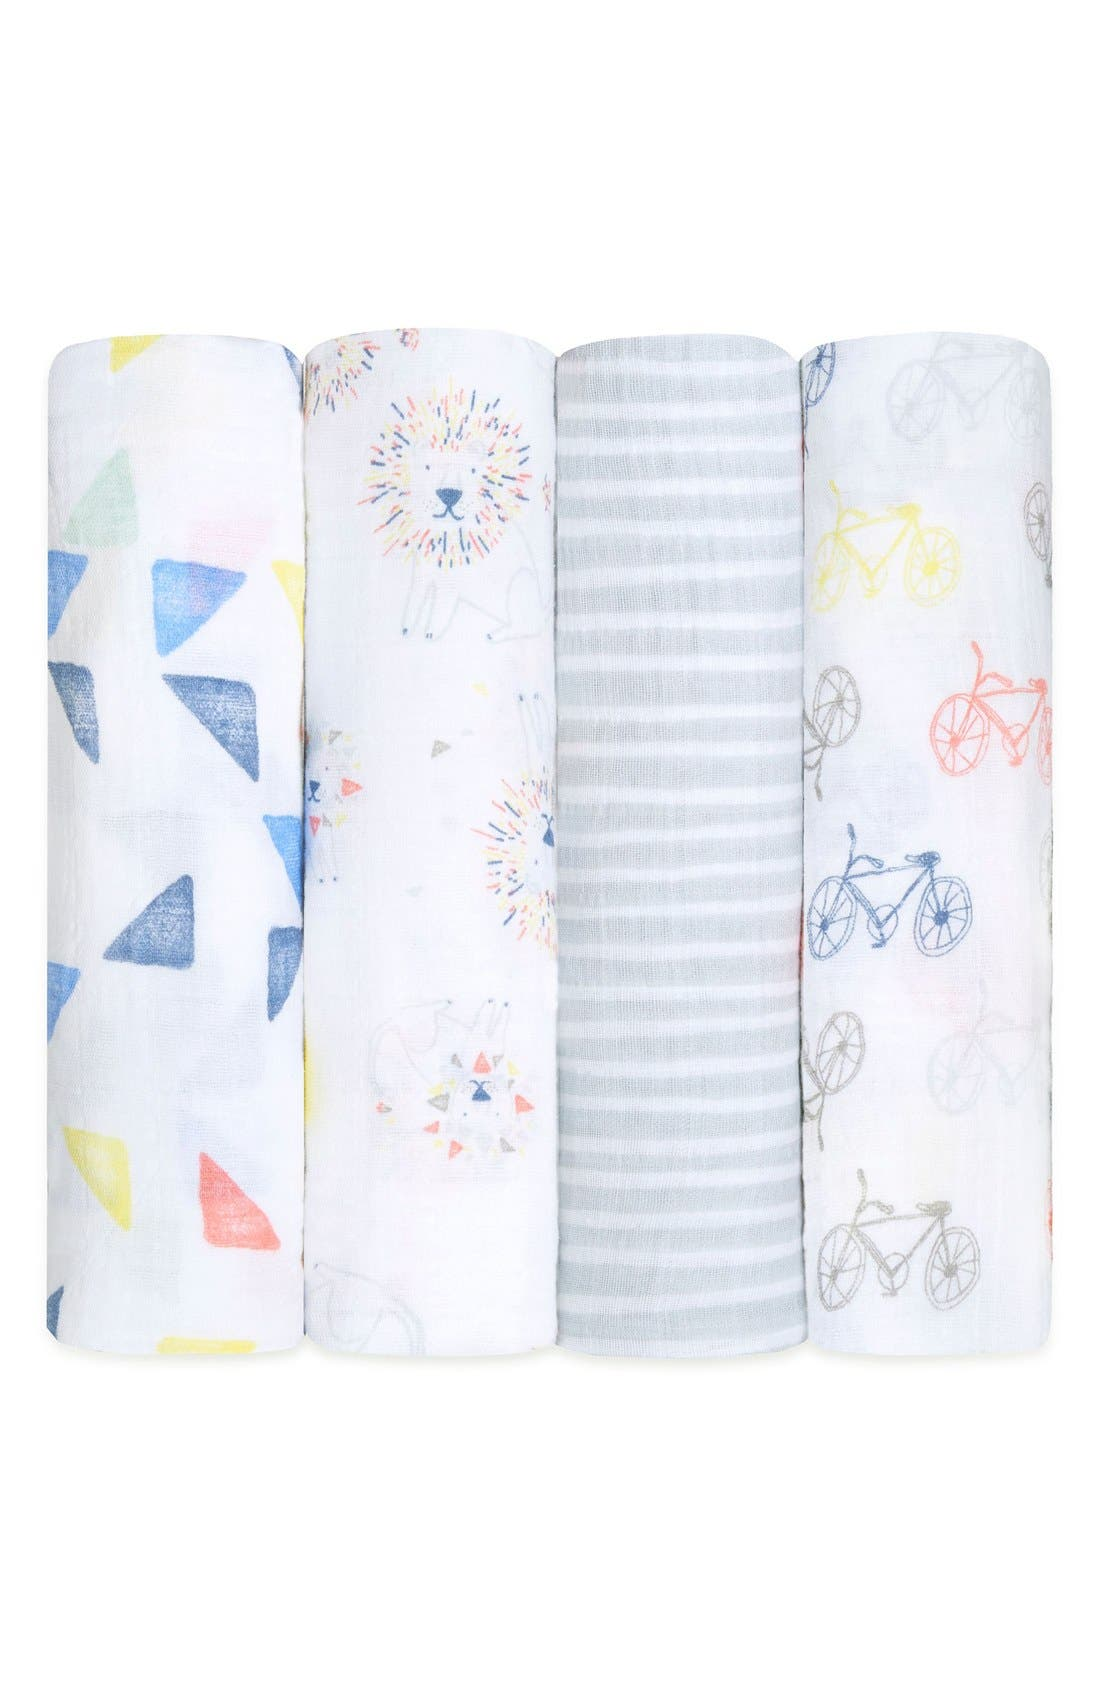 4-Pack Classic Swaddling Cloths,                             Main thumbnail 1, color,                             143